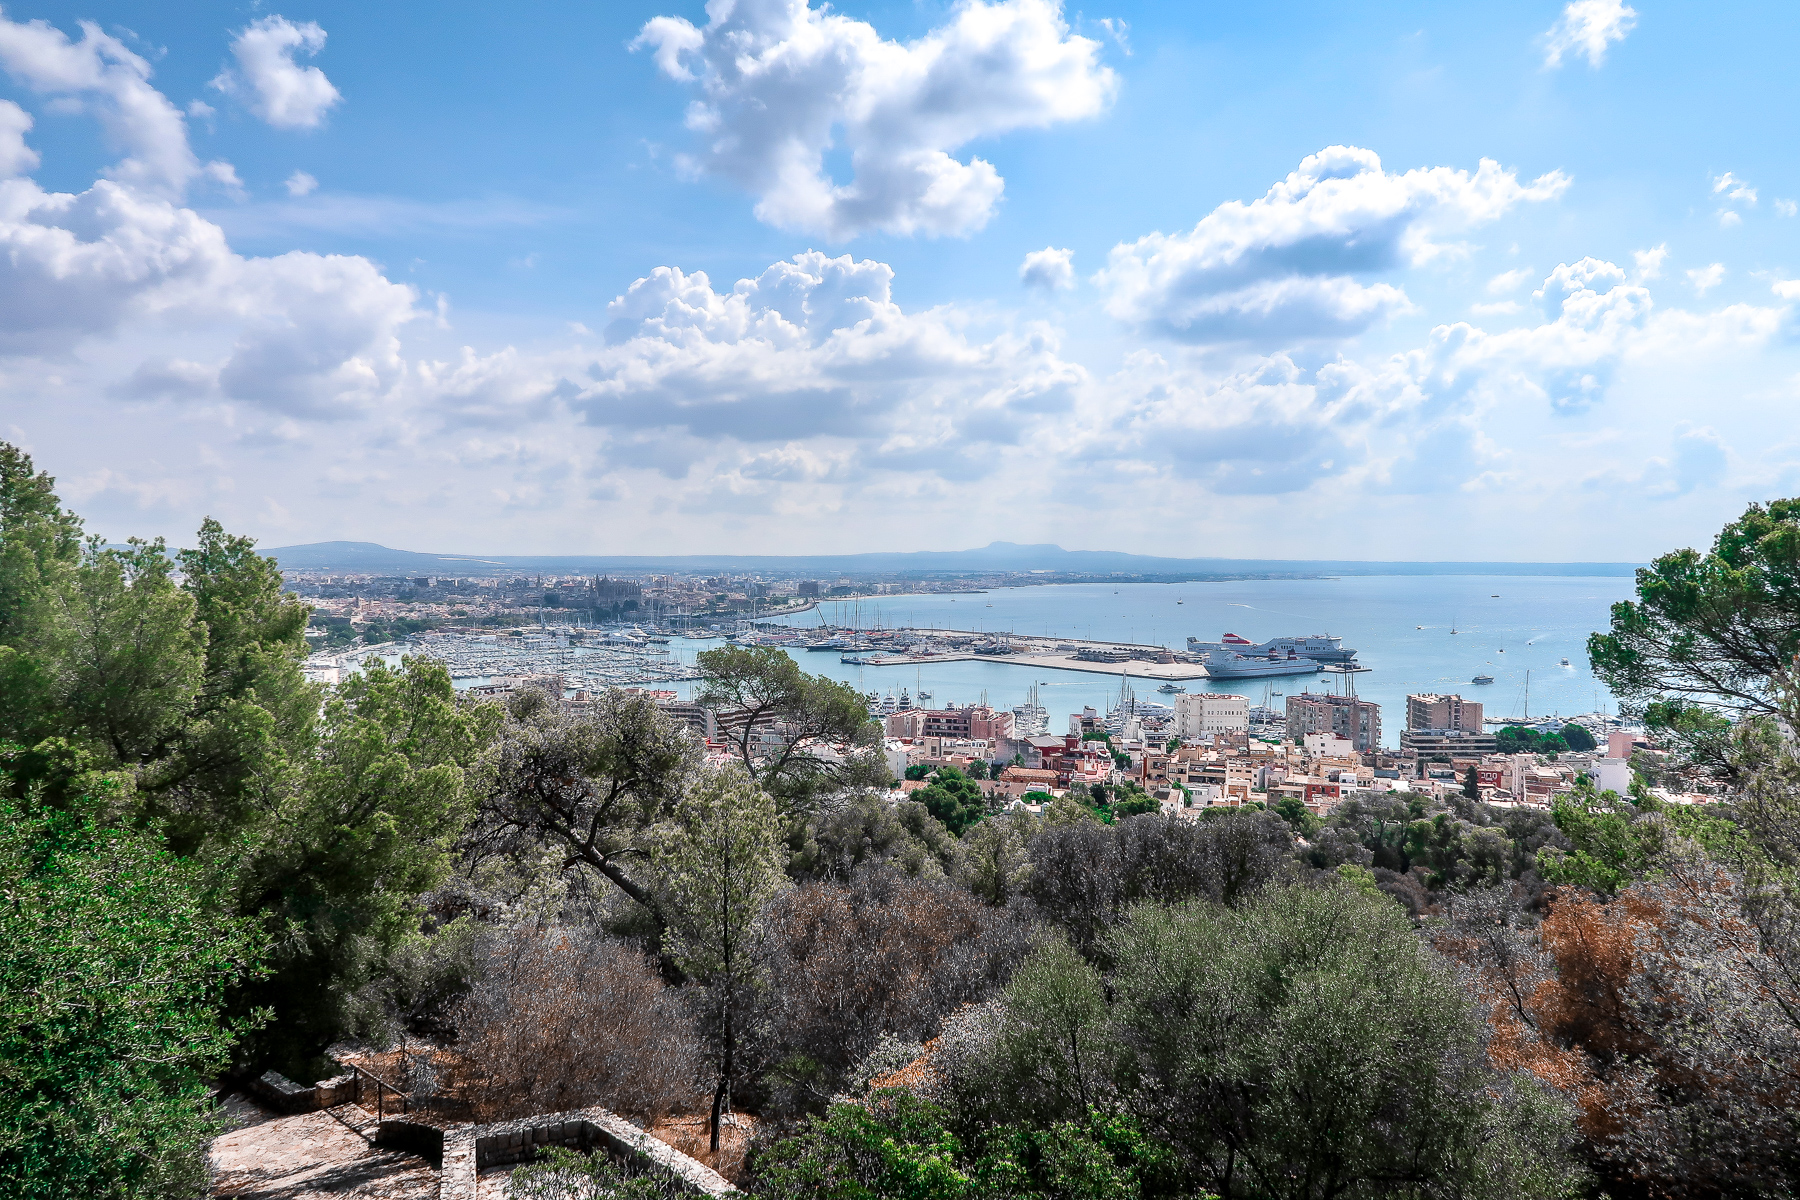 Castle View | How to spend 6 hours in Palma Mallorca | Travel Guide | Elle Blonde Luxury Lifestyle Destination Blog